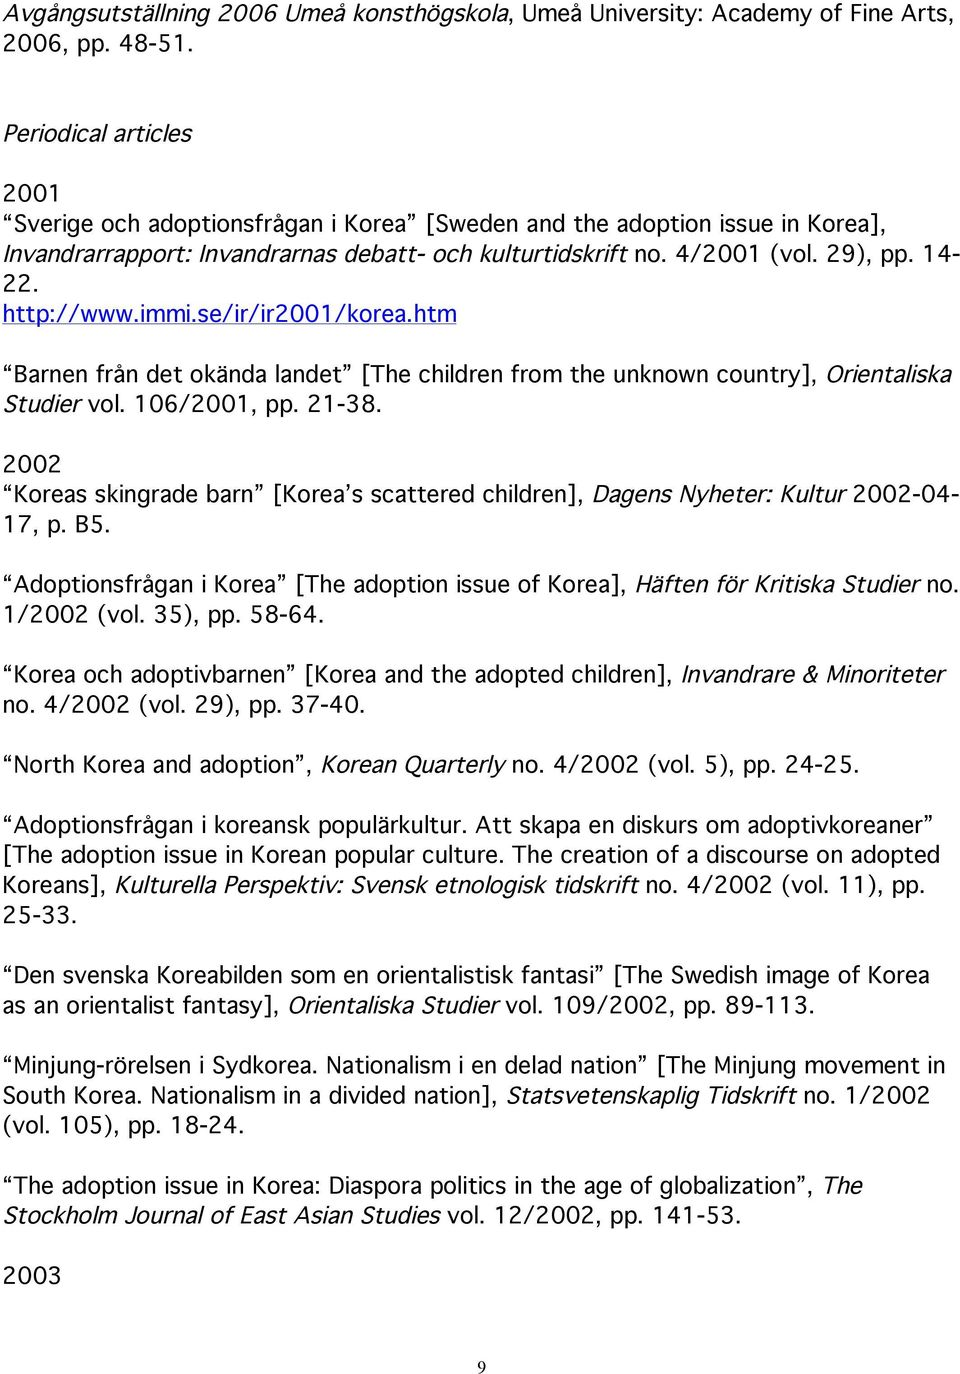 http://www.immi.se/ir/ir2001/korea.htm Barnen från det okända landet [The children from the unknown country], Orientaliska Studier vol. 106/2001, pp. 21-38.